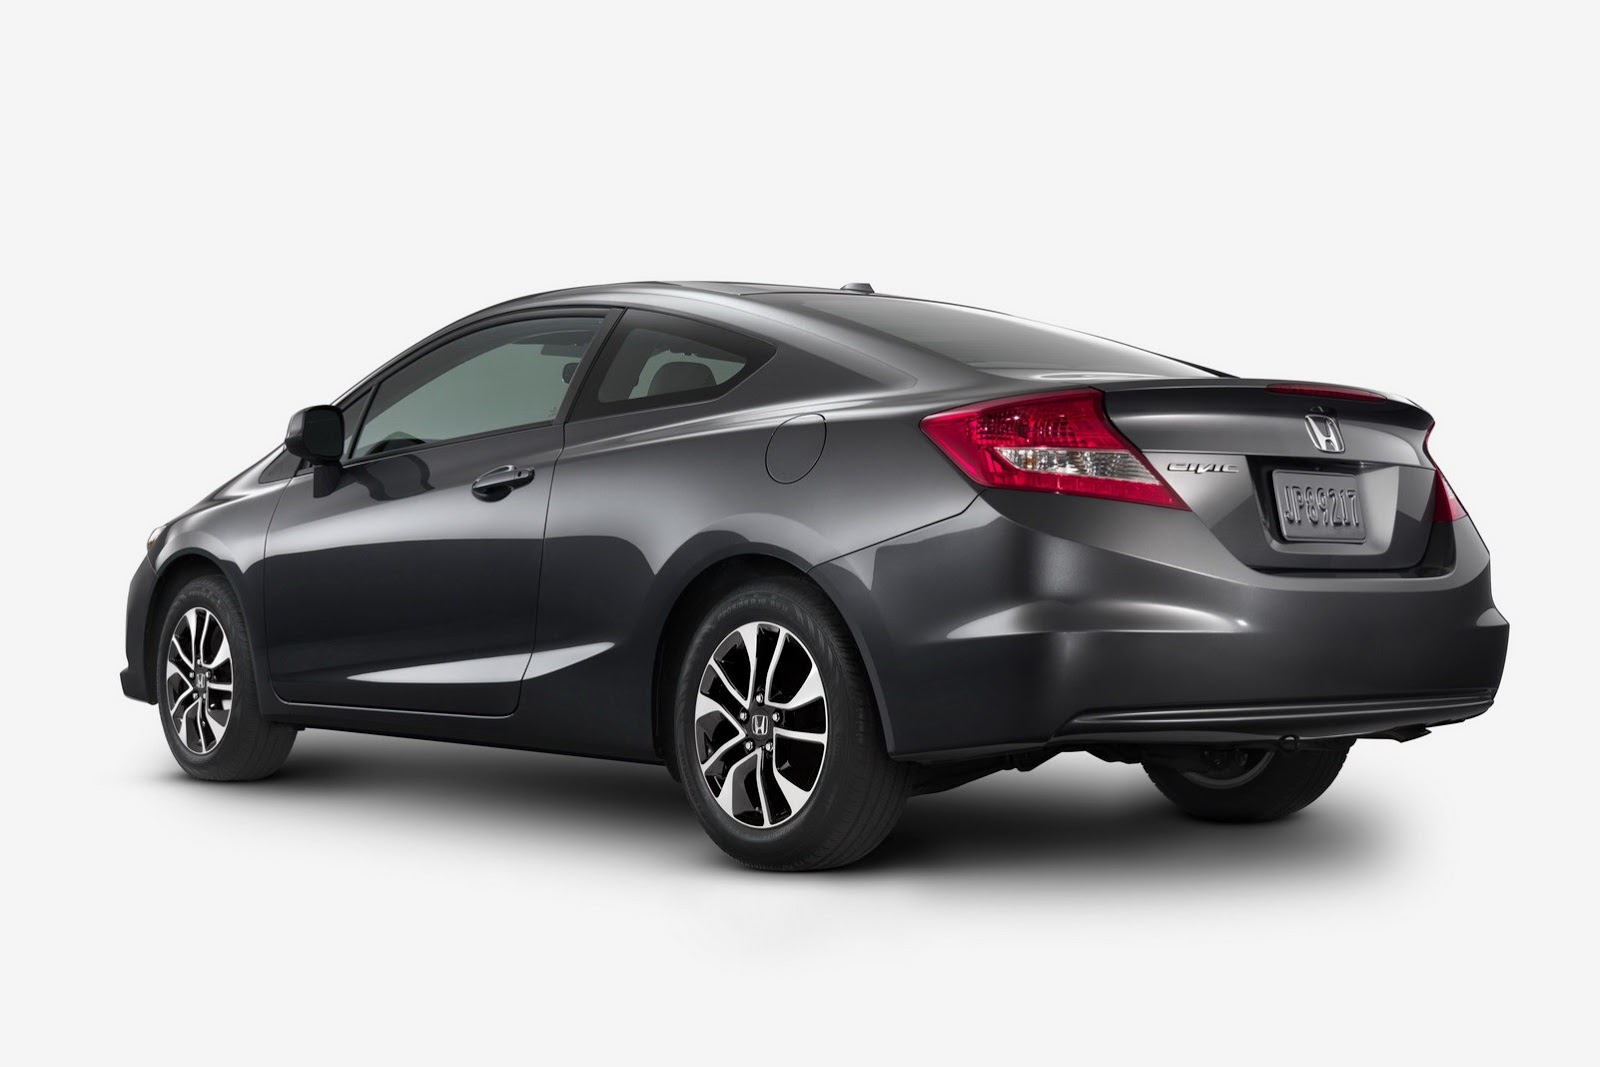 honda refreshes civic for 2013 with new grille and added kit photo gallery autoevolution. Black Bedroom Furniture Sets. Home Design Ideas